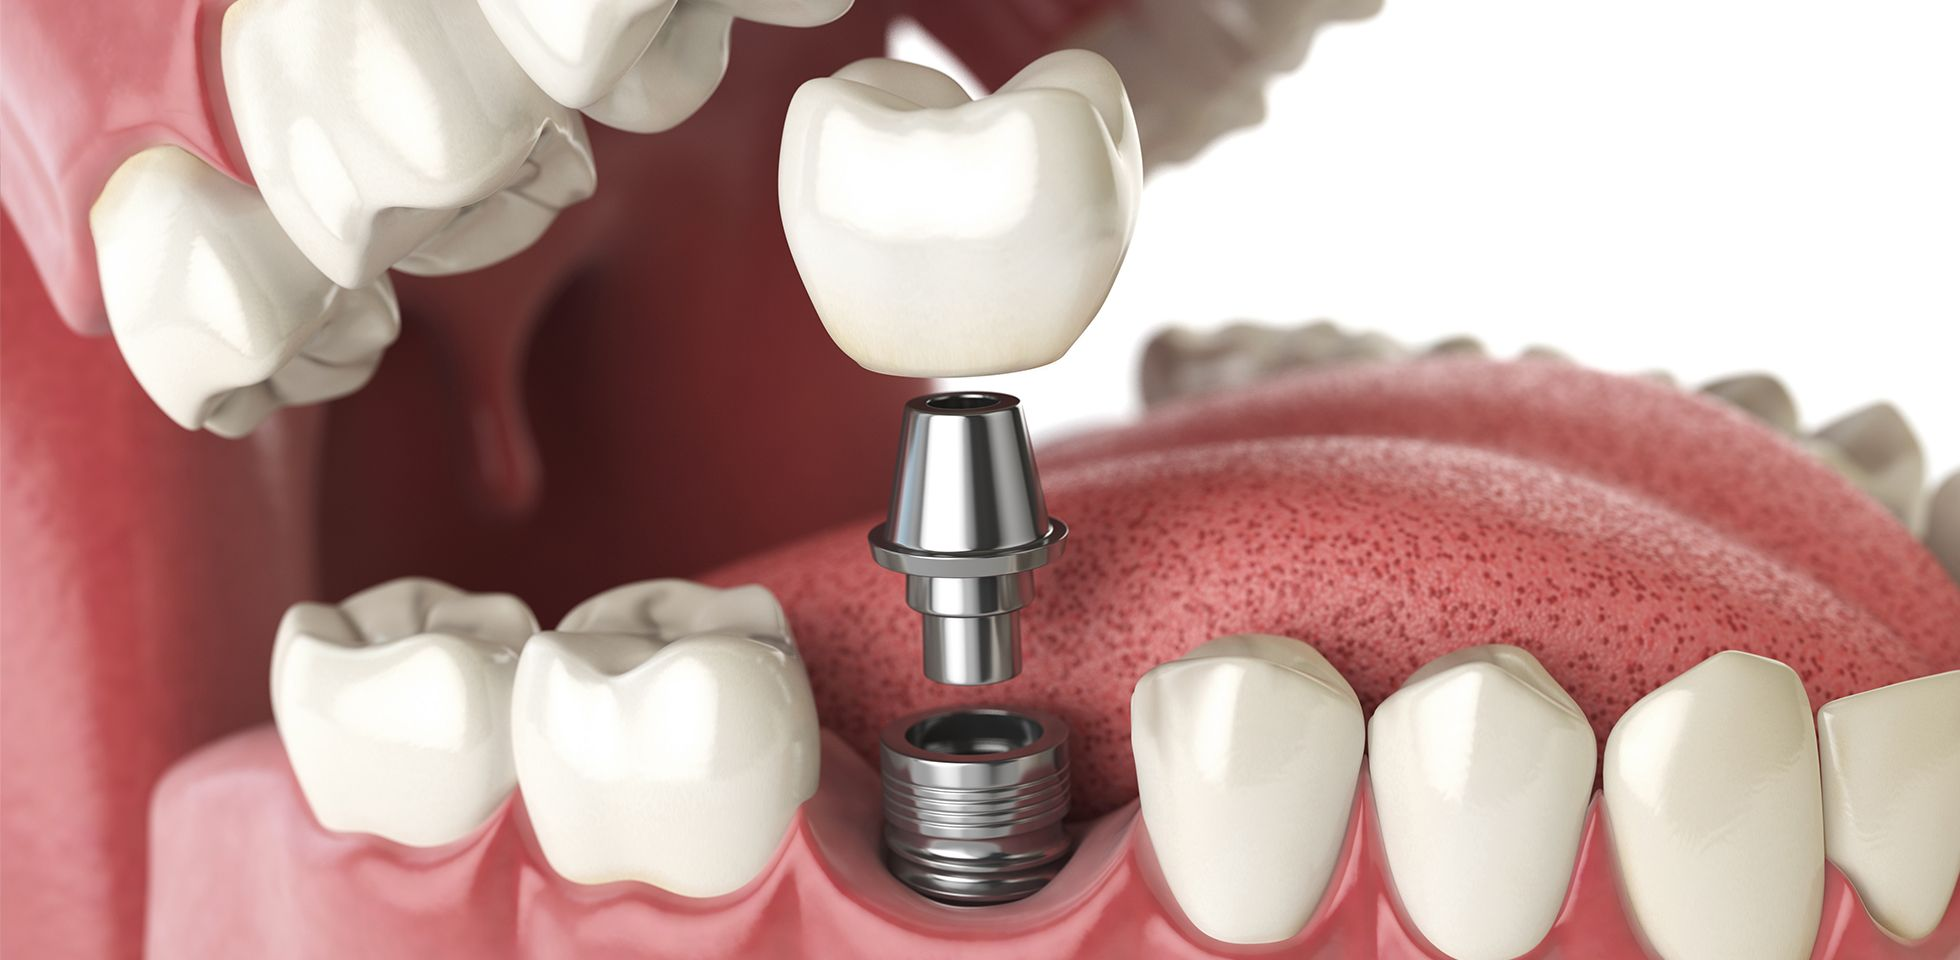 Cosmetic Dental Implants In Colombia For A Third Of The Price With Dentist Dr. Julio Oliver 2